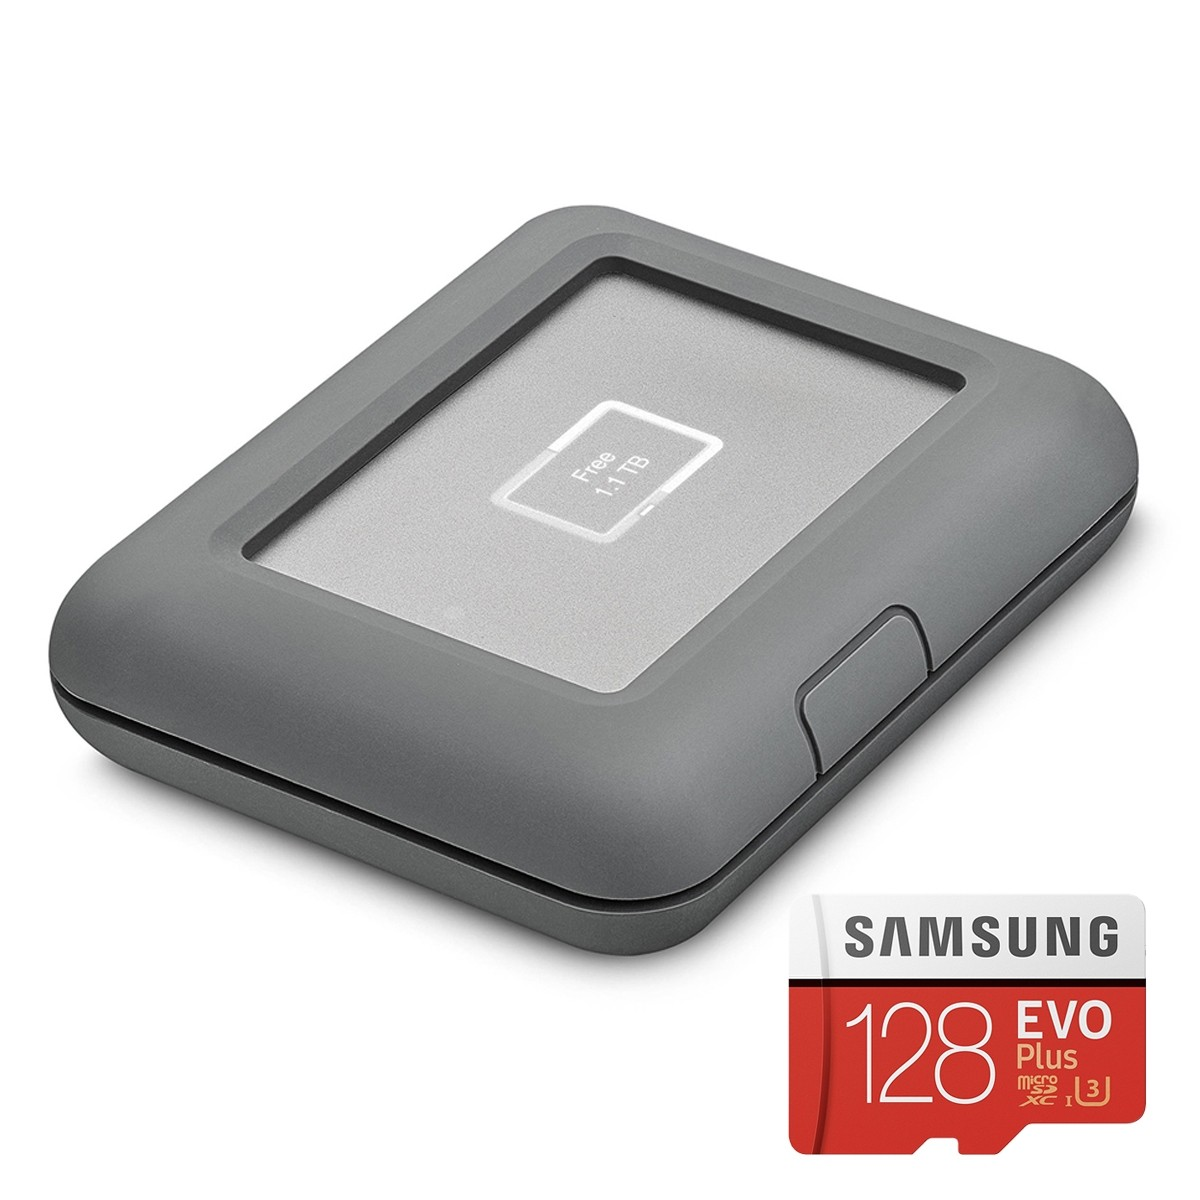 Ideal Samsung Gb Micro Sdcard Grey Digital Outlet Lacie Tb Dji Portable Hard Disk Drive Lacie Tb Dji Portable Hard Disk Drive Samsung Gb 1tb Sd Card Note 9 1tb Sd Card Ebay dpreview 1 Tb Sd Card